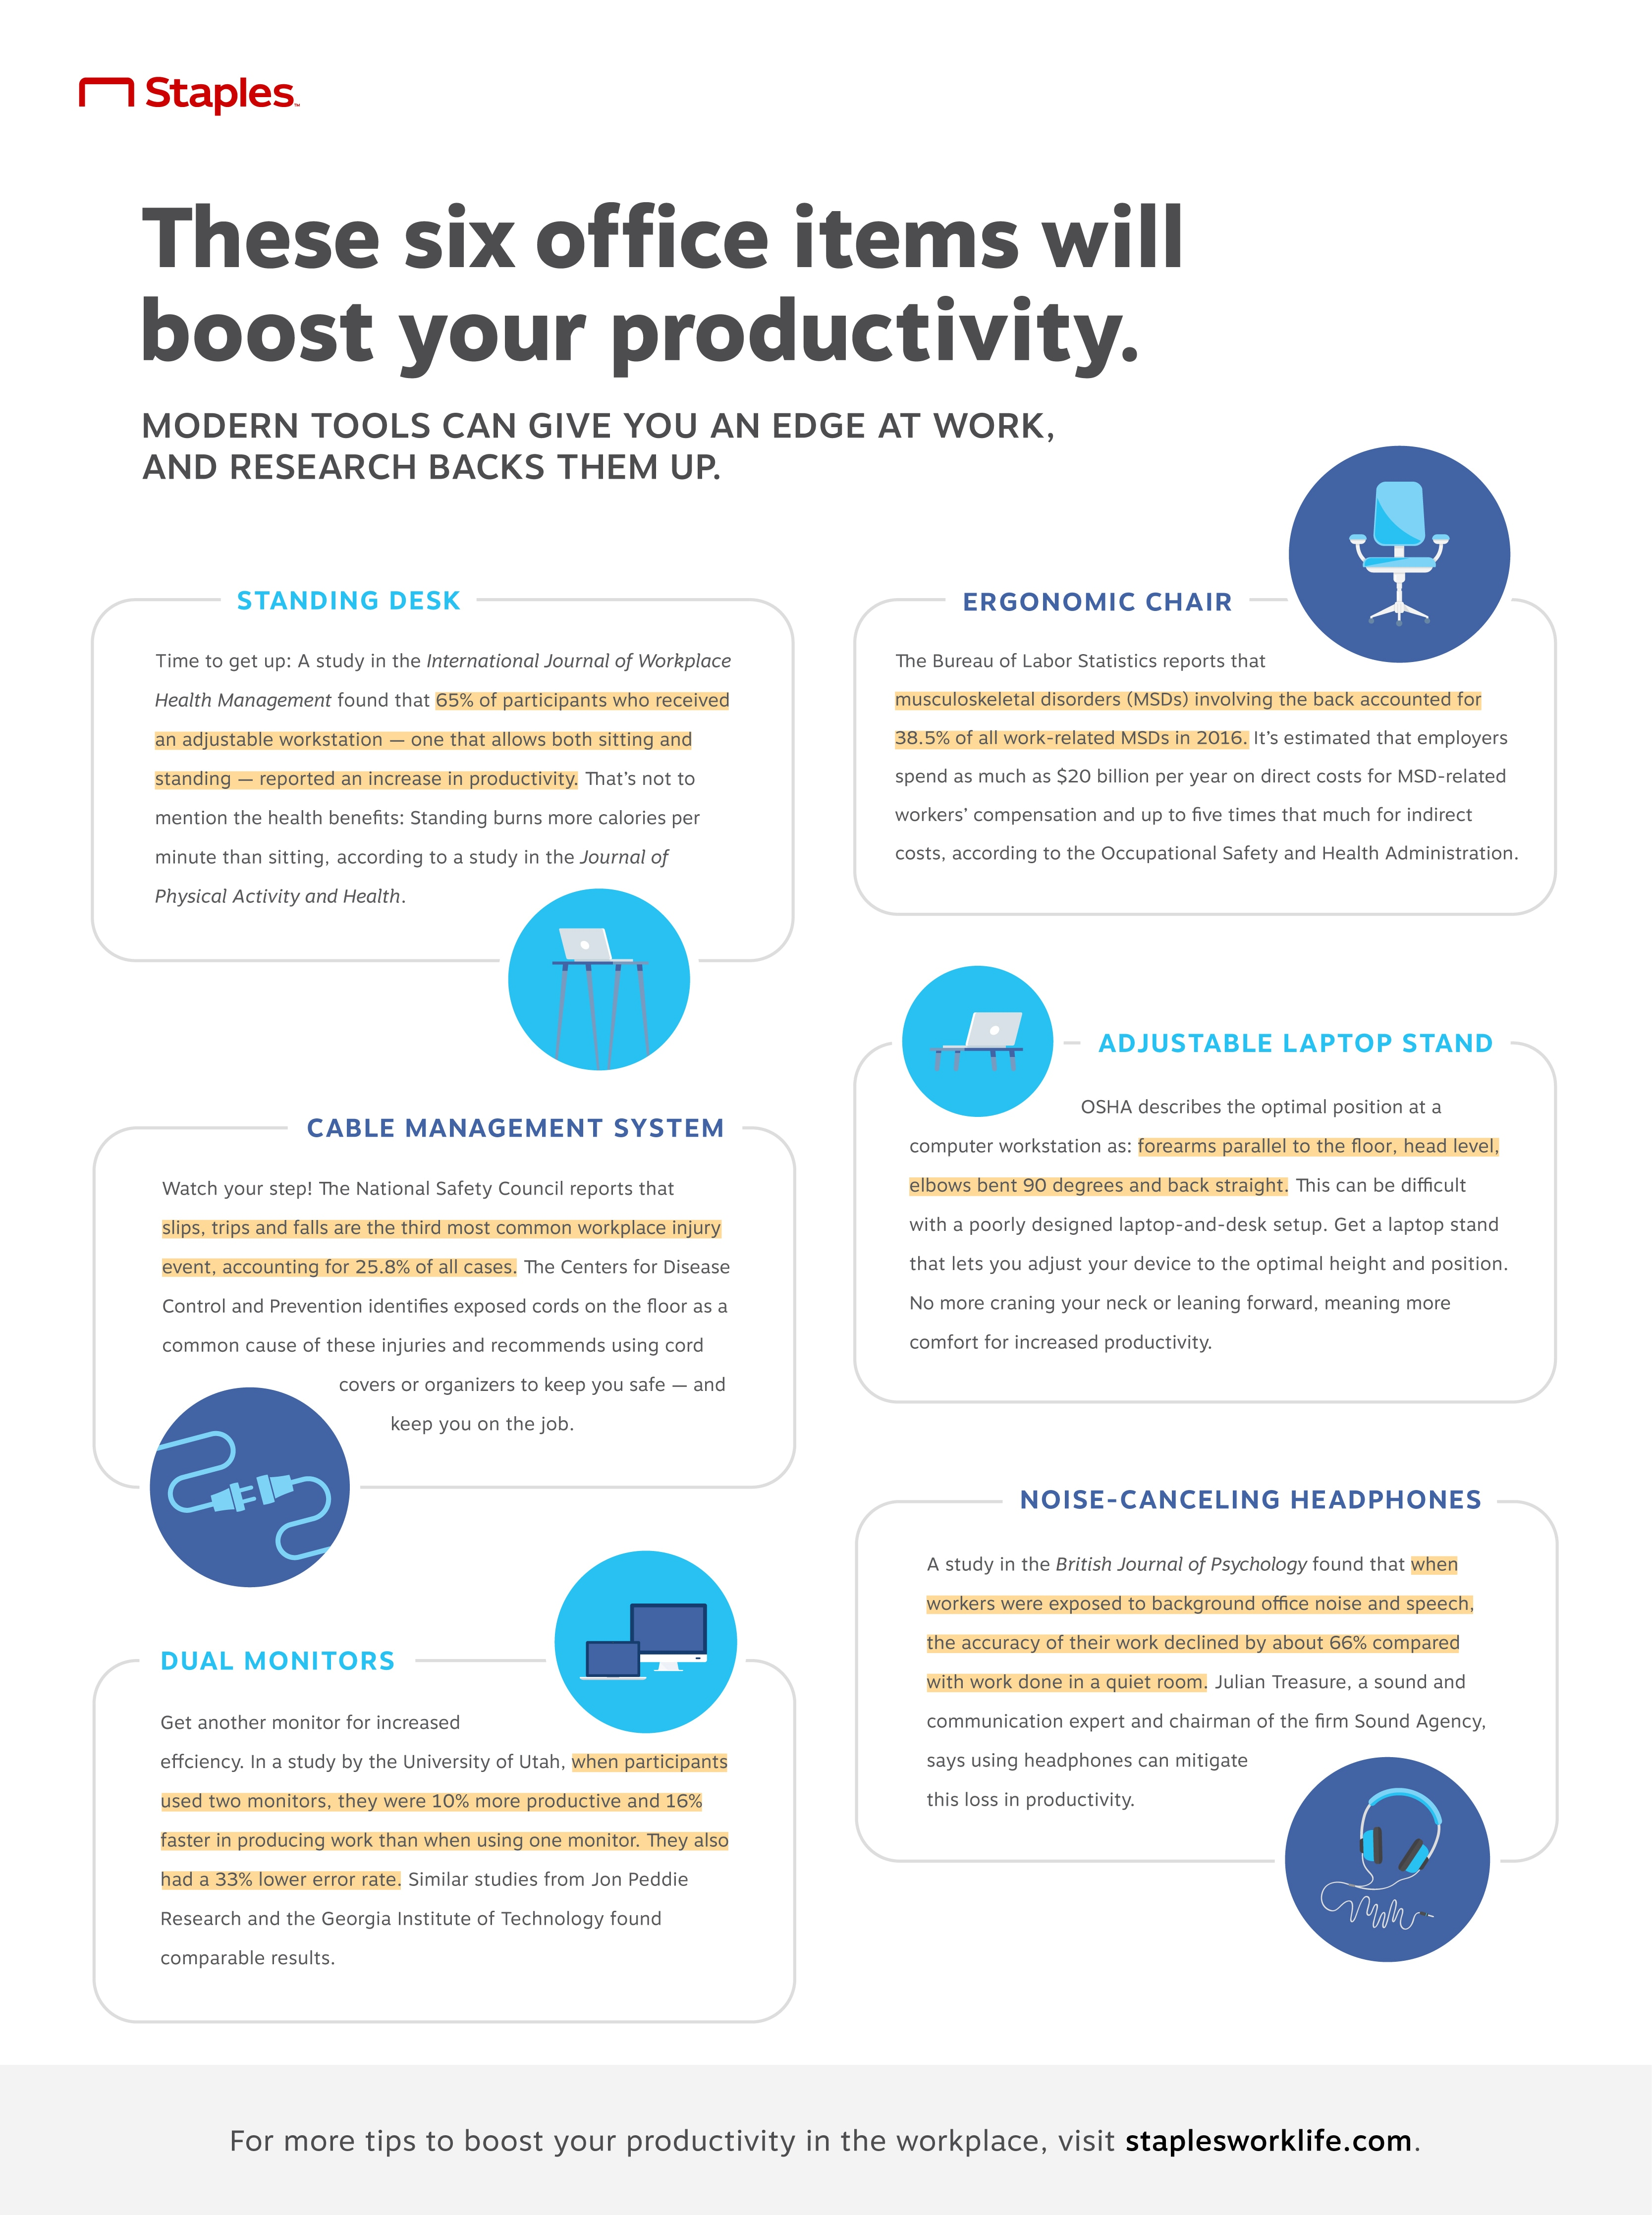 The Office Items You Need to Boost Productivity